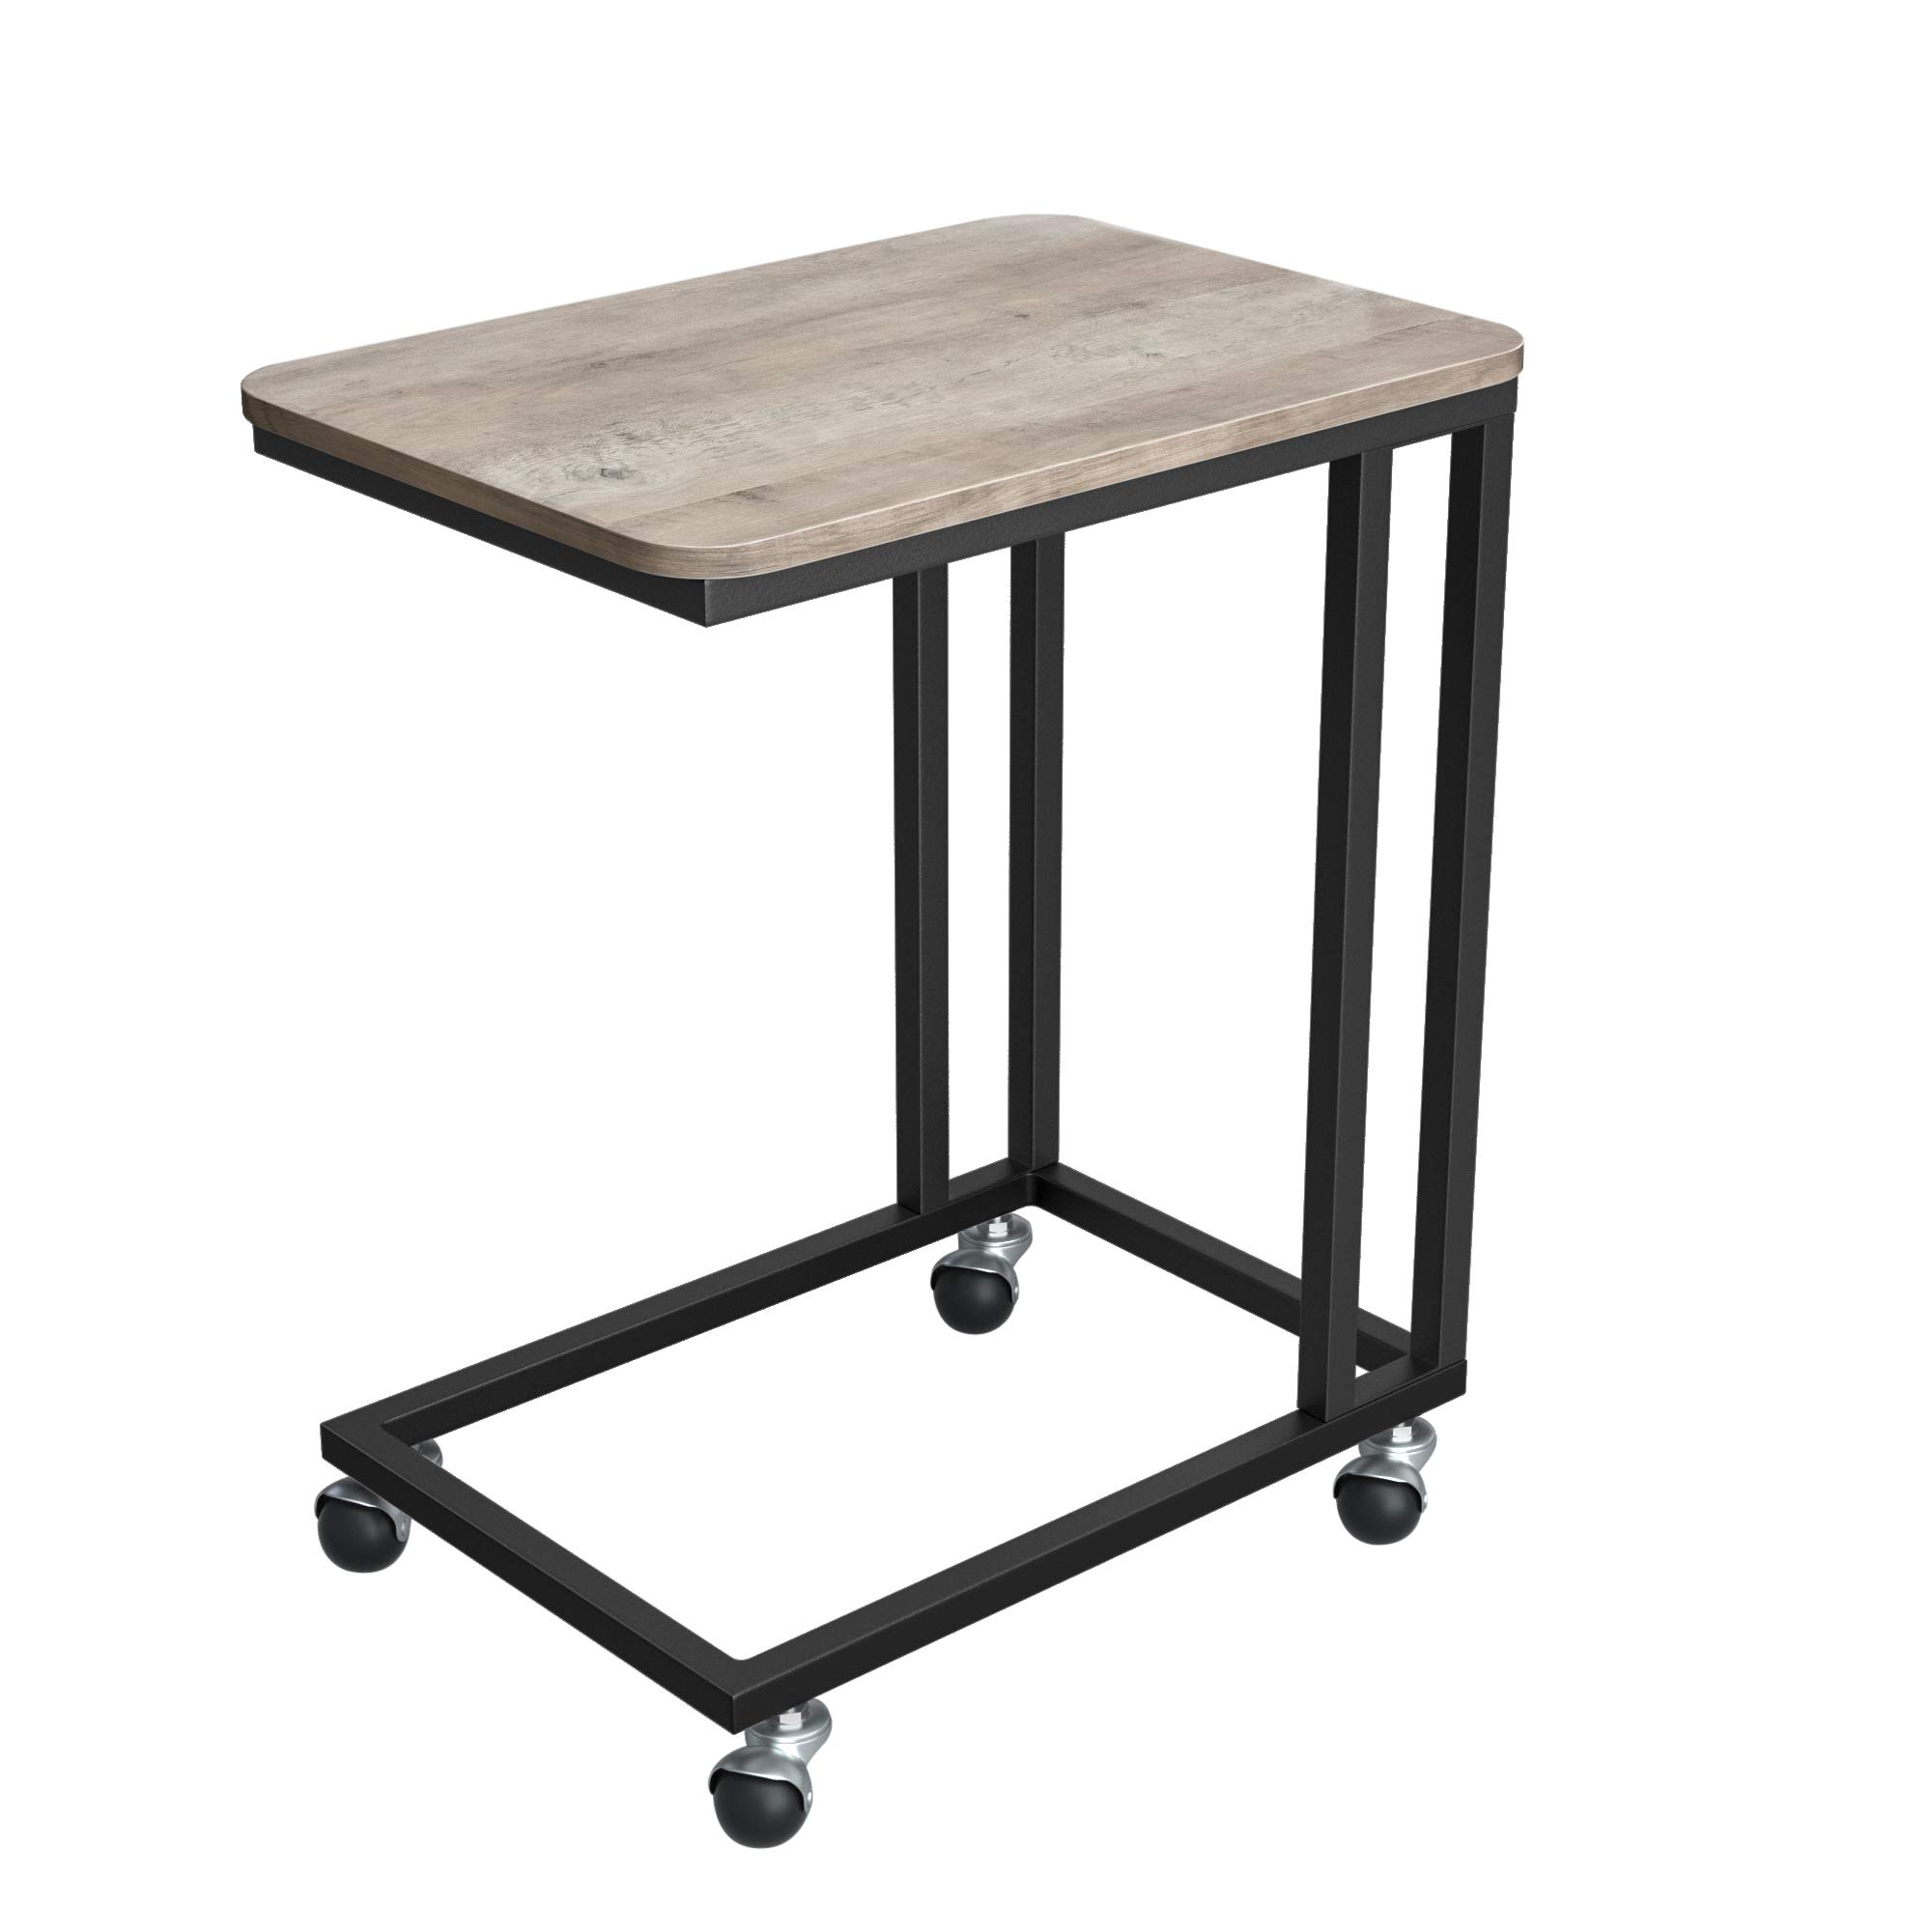 VASAGLE End Table, Side Table, Coffee Table, with Steel Frame and Castors, Easy Assembly, Industrial, for Living room, Bedroom, Balcony, Greige and Black LNT050B02